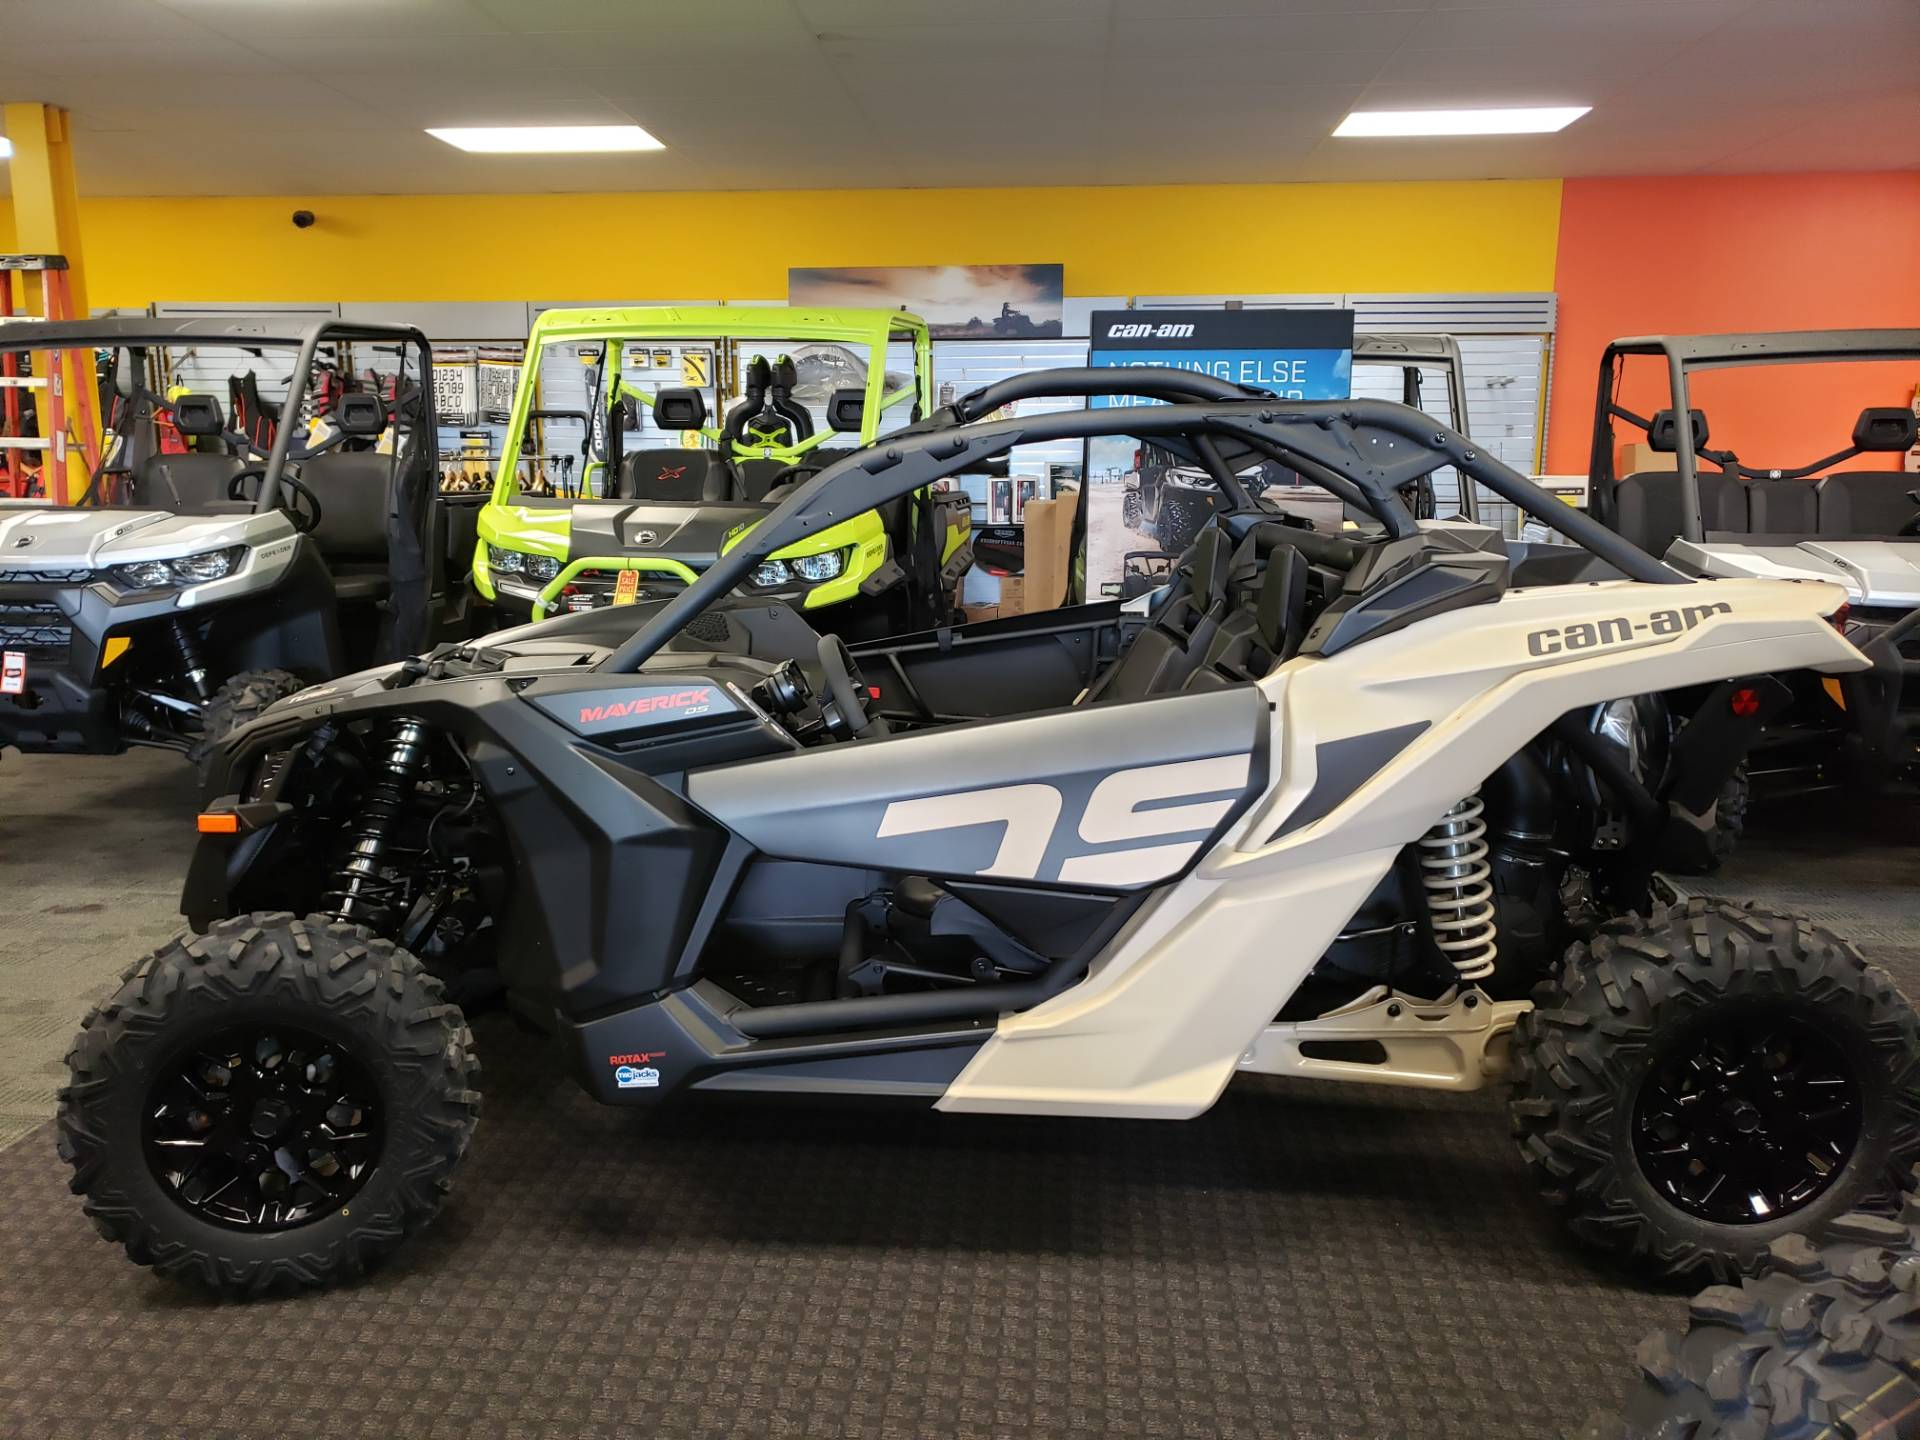 2021 Can-Am Maverick X3 DS Turbo in Wilkes Barre, Pennsylvania - Photo 1